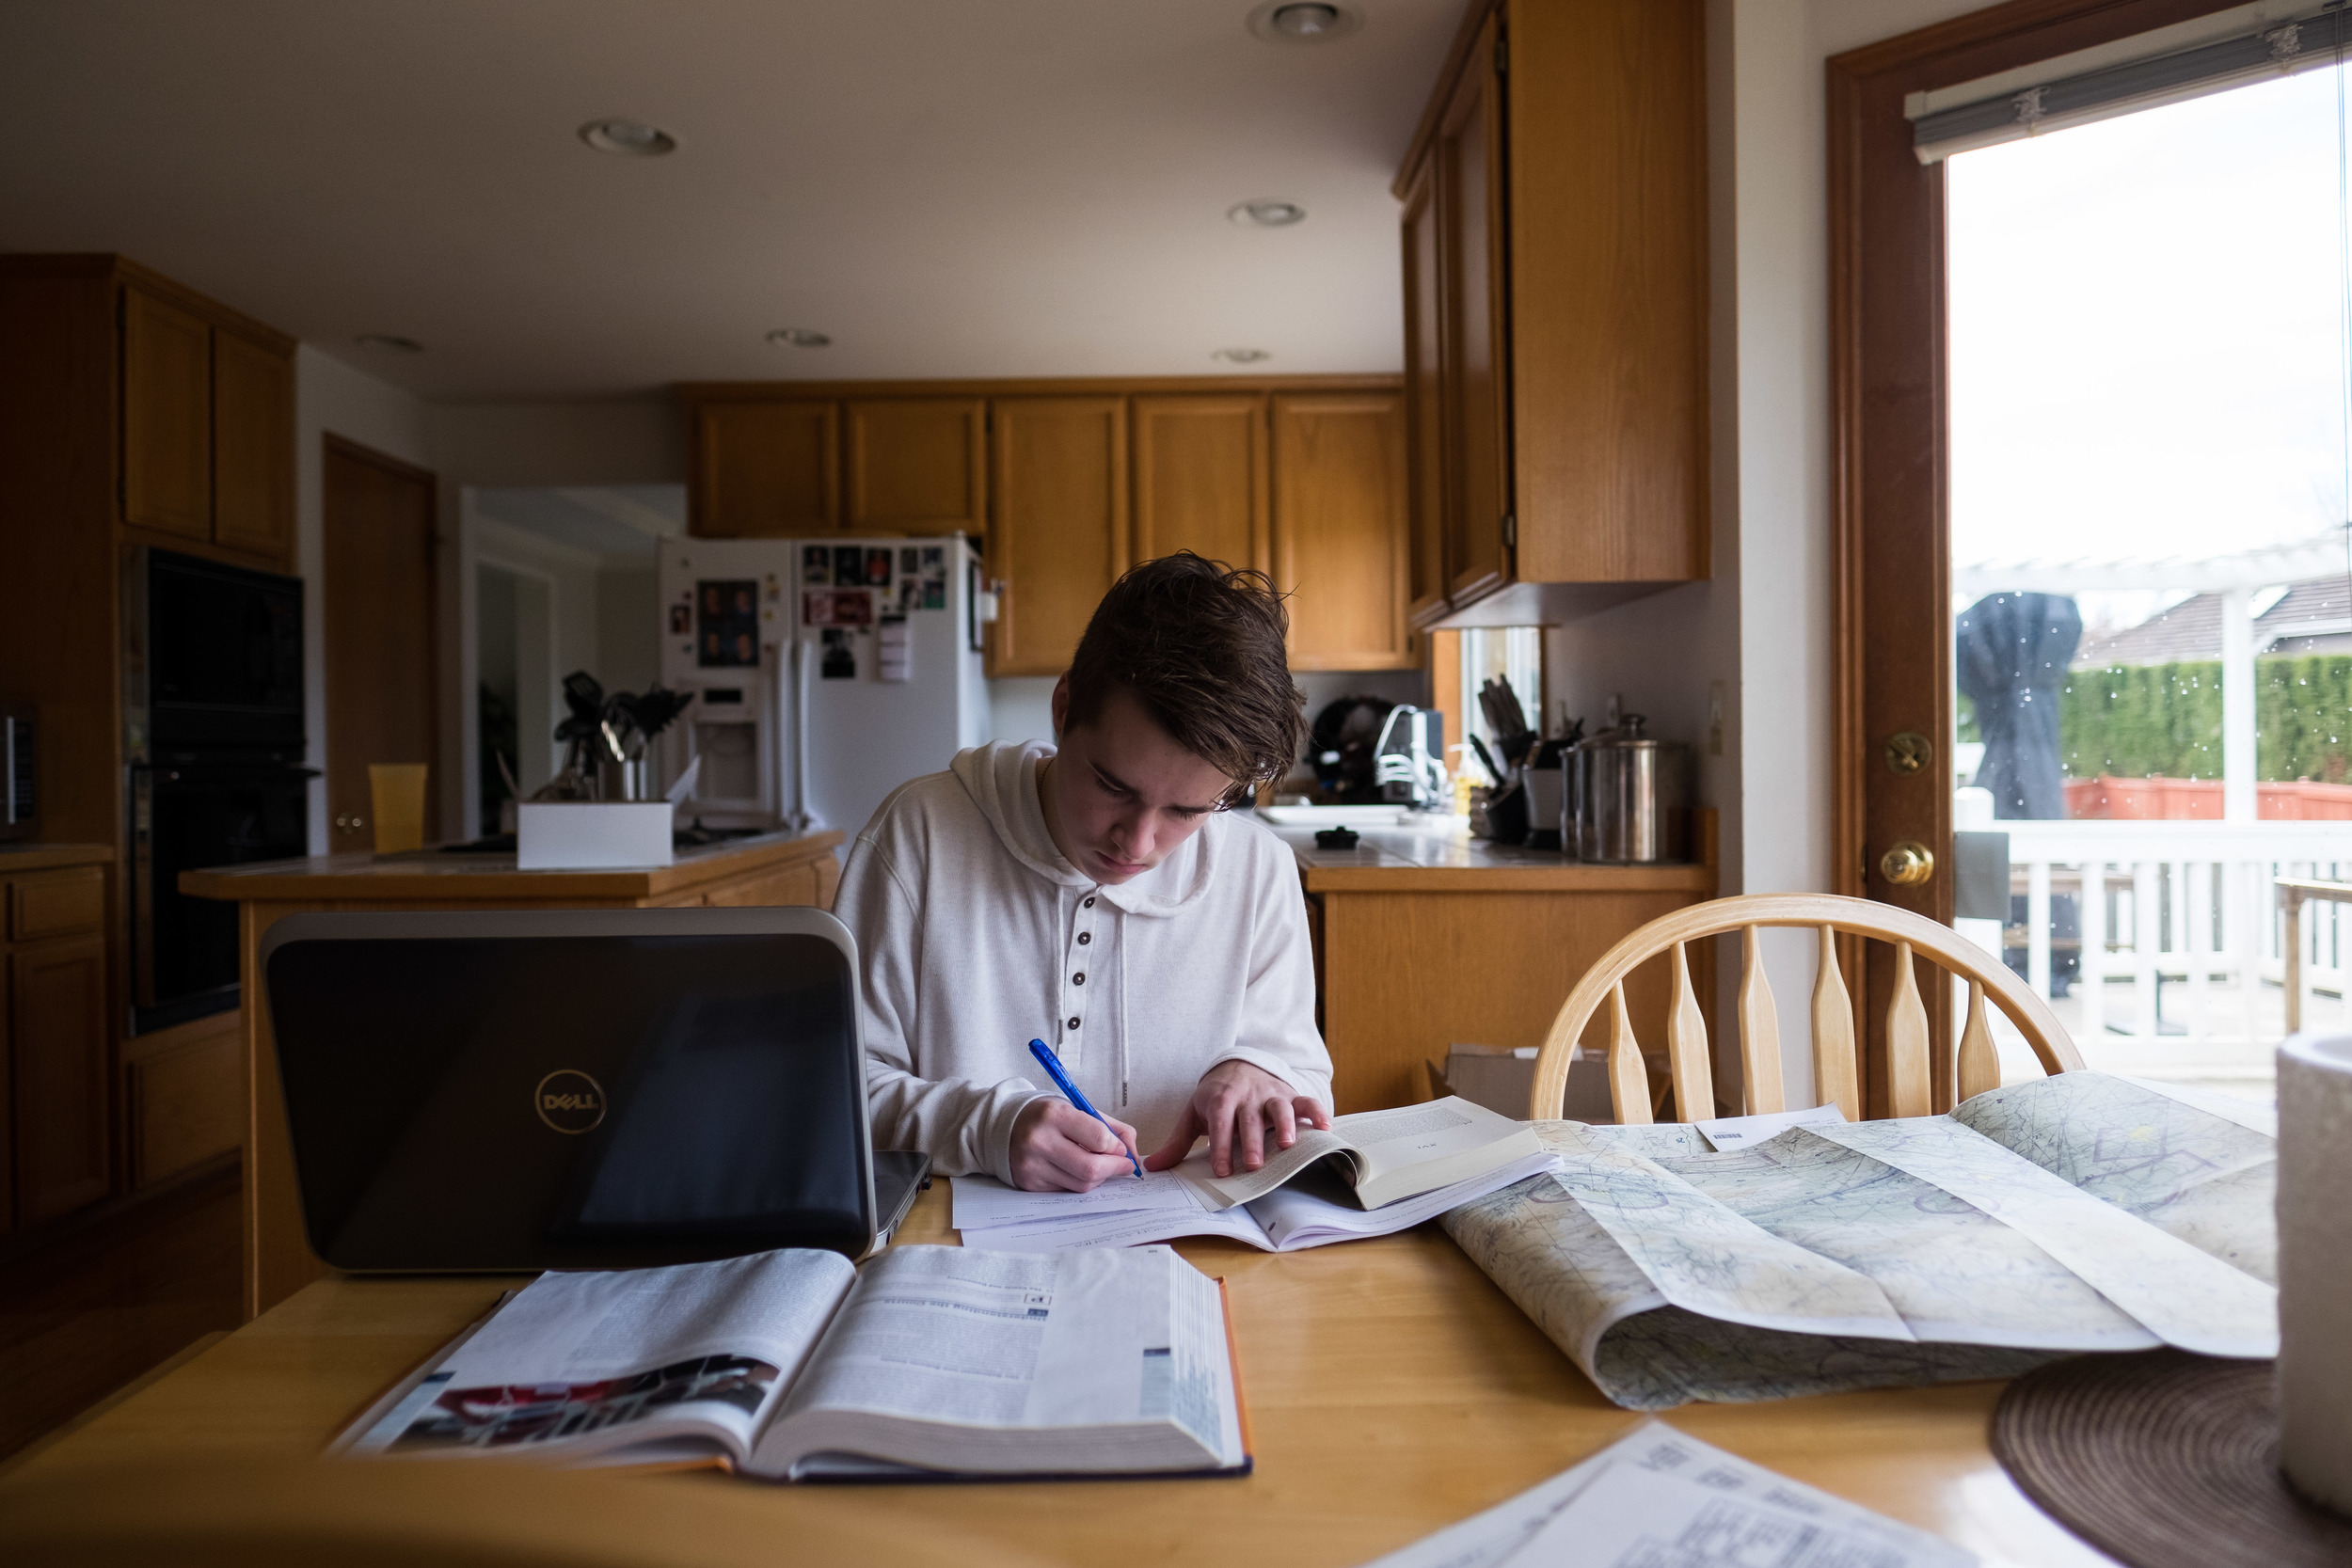 Braden Hansen, a high school senior, works on his homework at his house in Mukilteo, Wash.. Hansen, 18, was diagnosed with narcolepsy last year, a rare sleep disorder for teenagers. For Klipsun Magazine